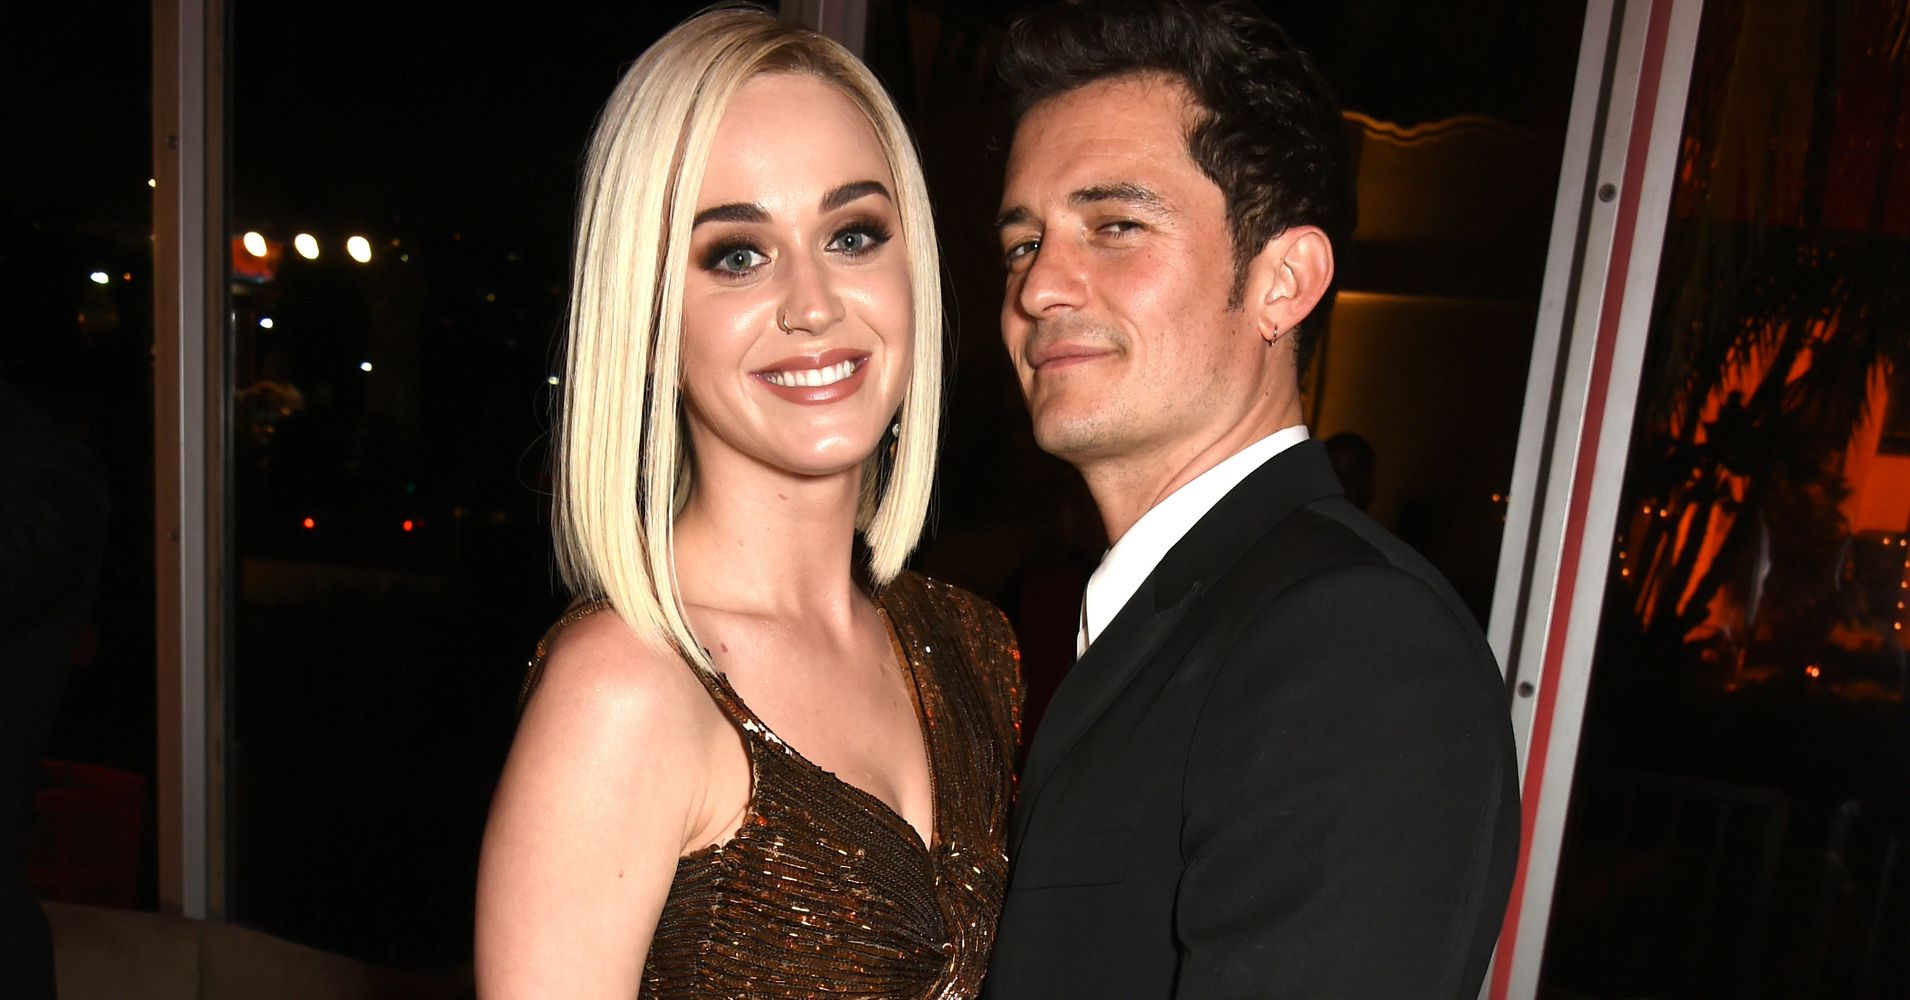 Orlando Bloom and Katy Perry relationship timeline: Their